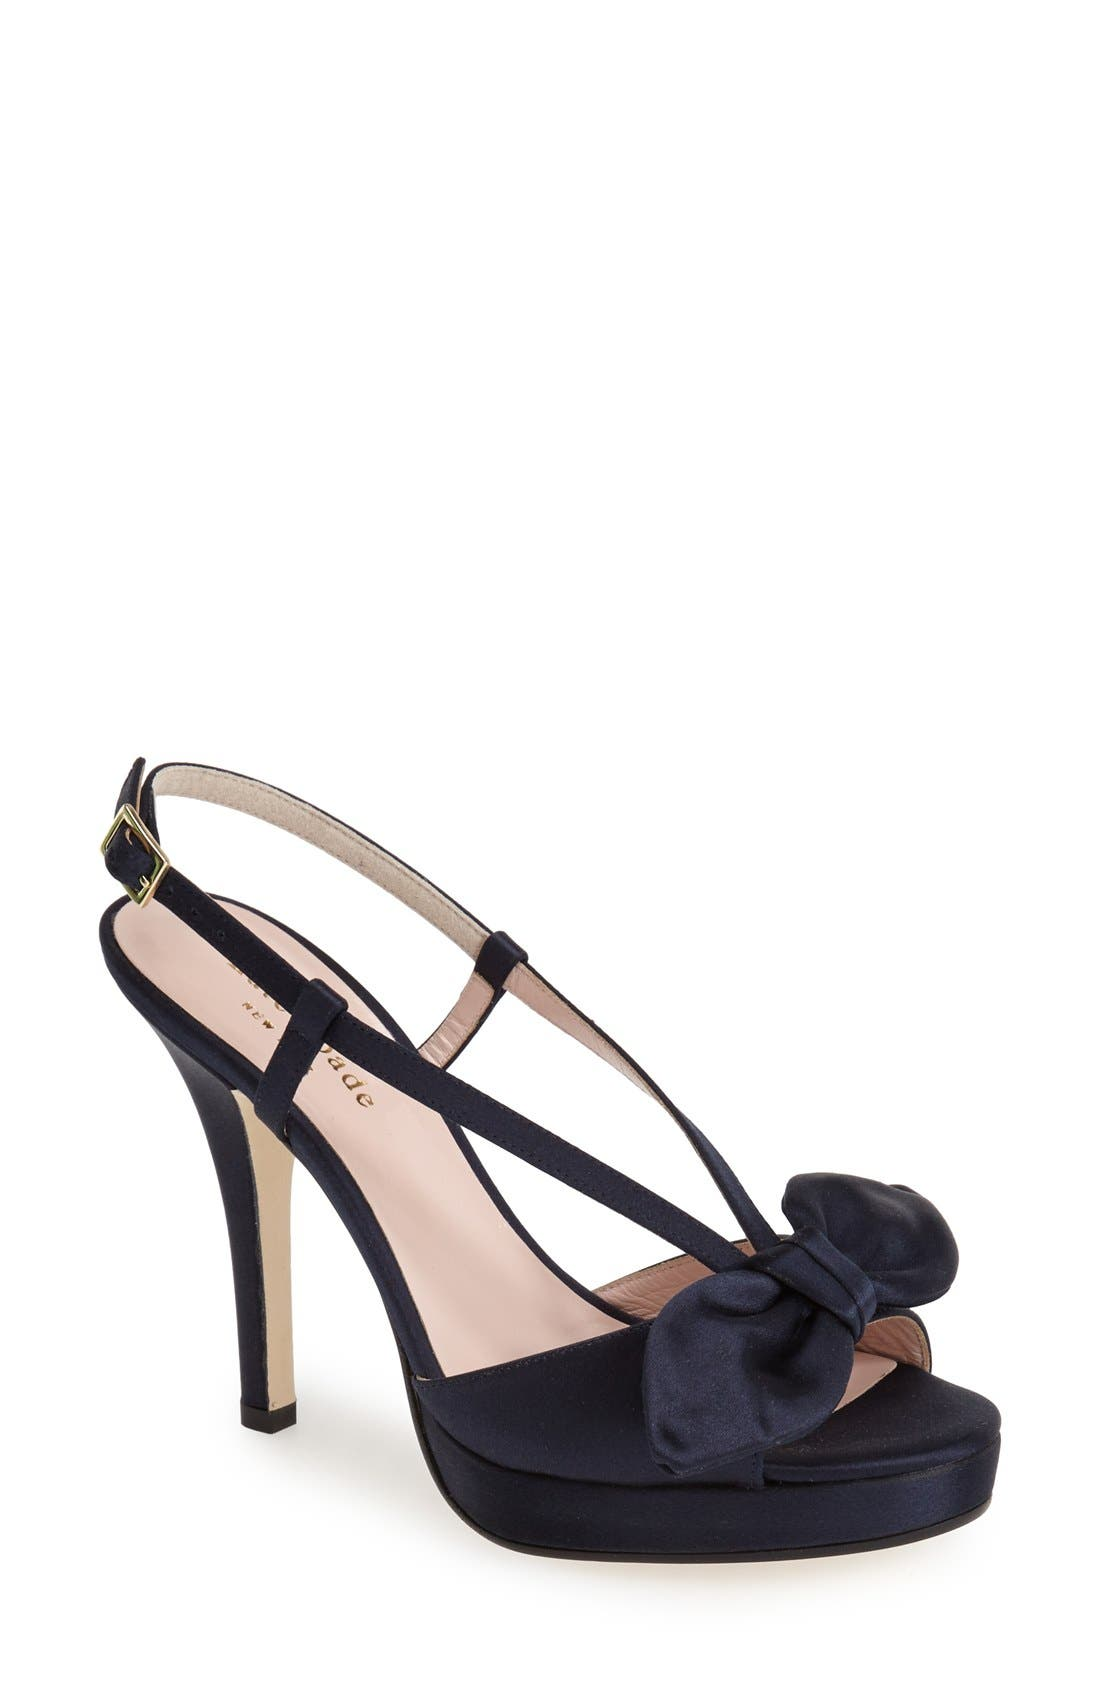 Alternate Image 1 Selected - kate spade new york 'rezza' platform sandal (Women)